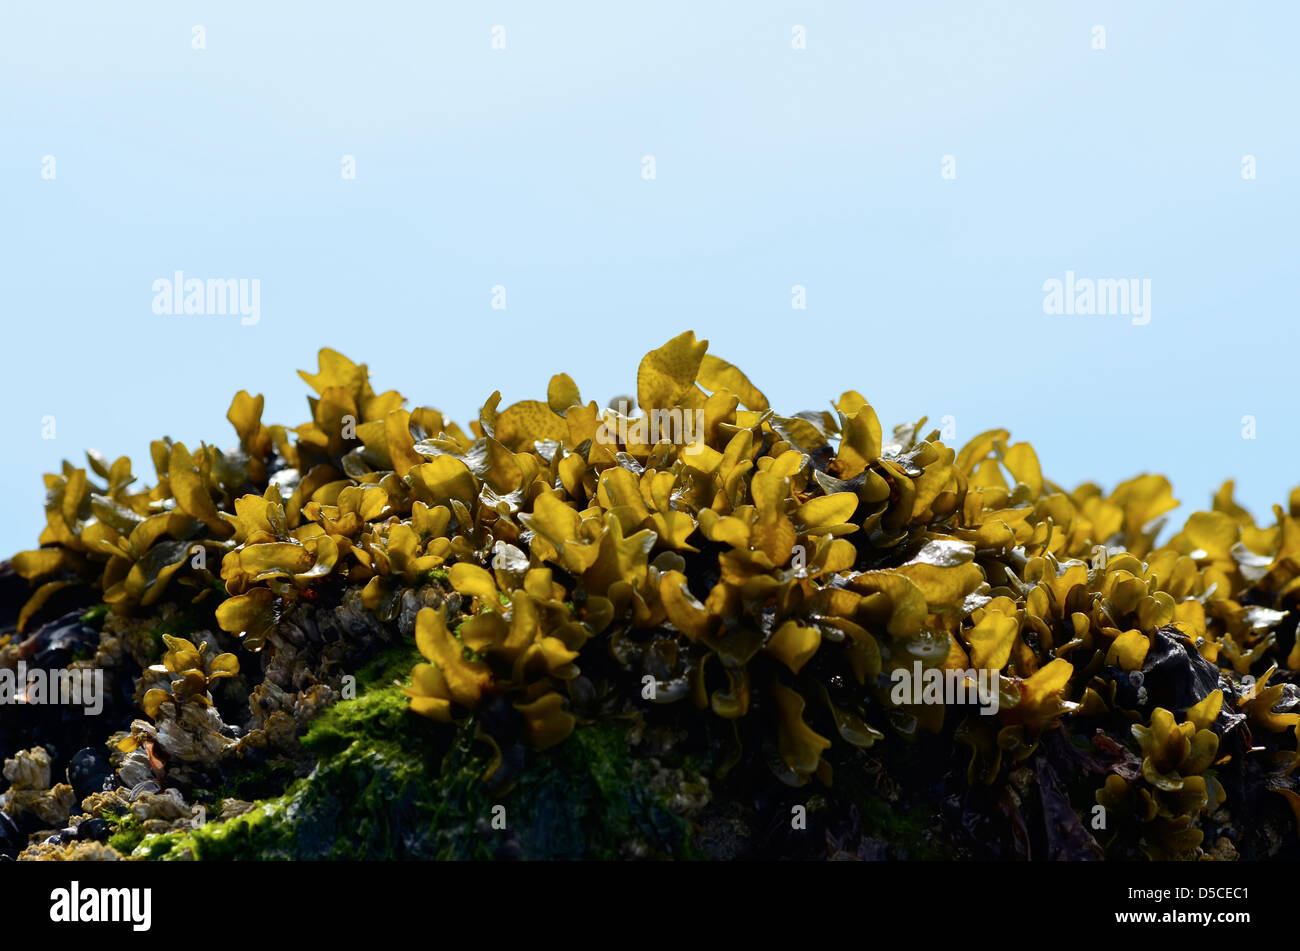 Fucus algae on the intertidal zone of the Alaskan coast. - Stock Image